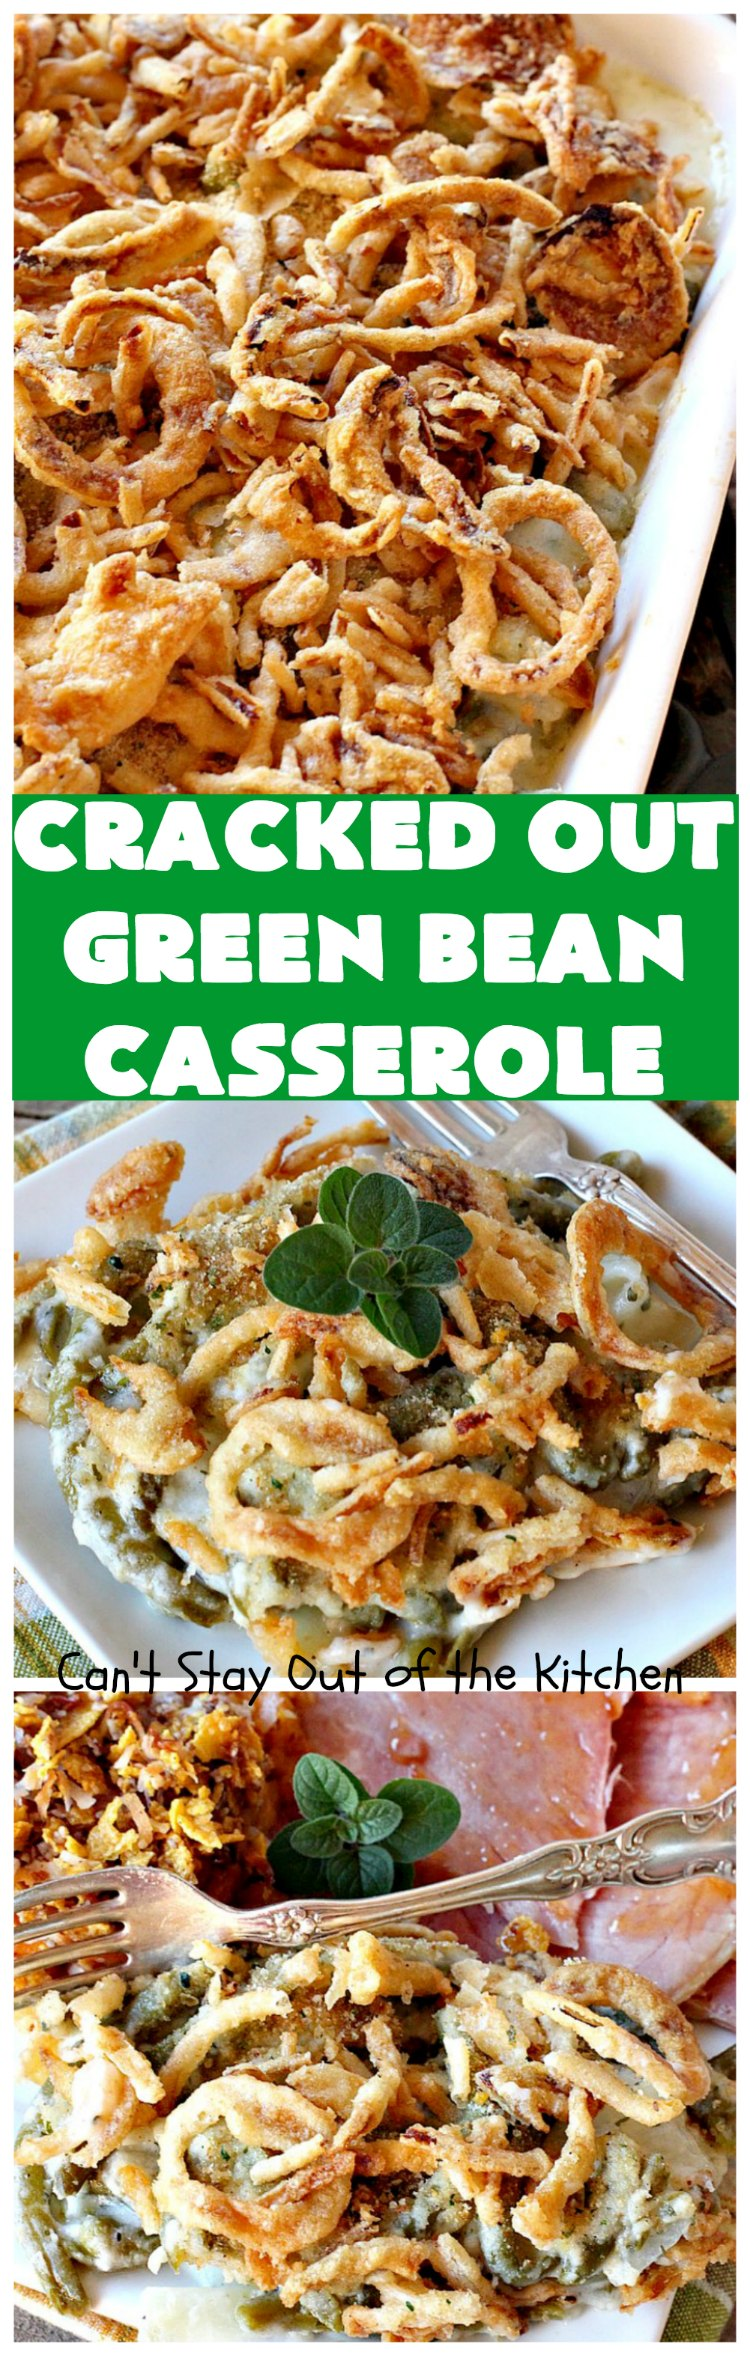 Cracked Out Green Bean Casserole | Can't Stay Out of the Kitchen